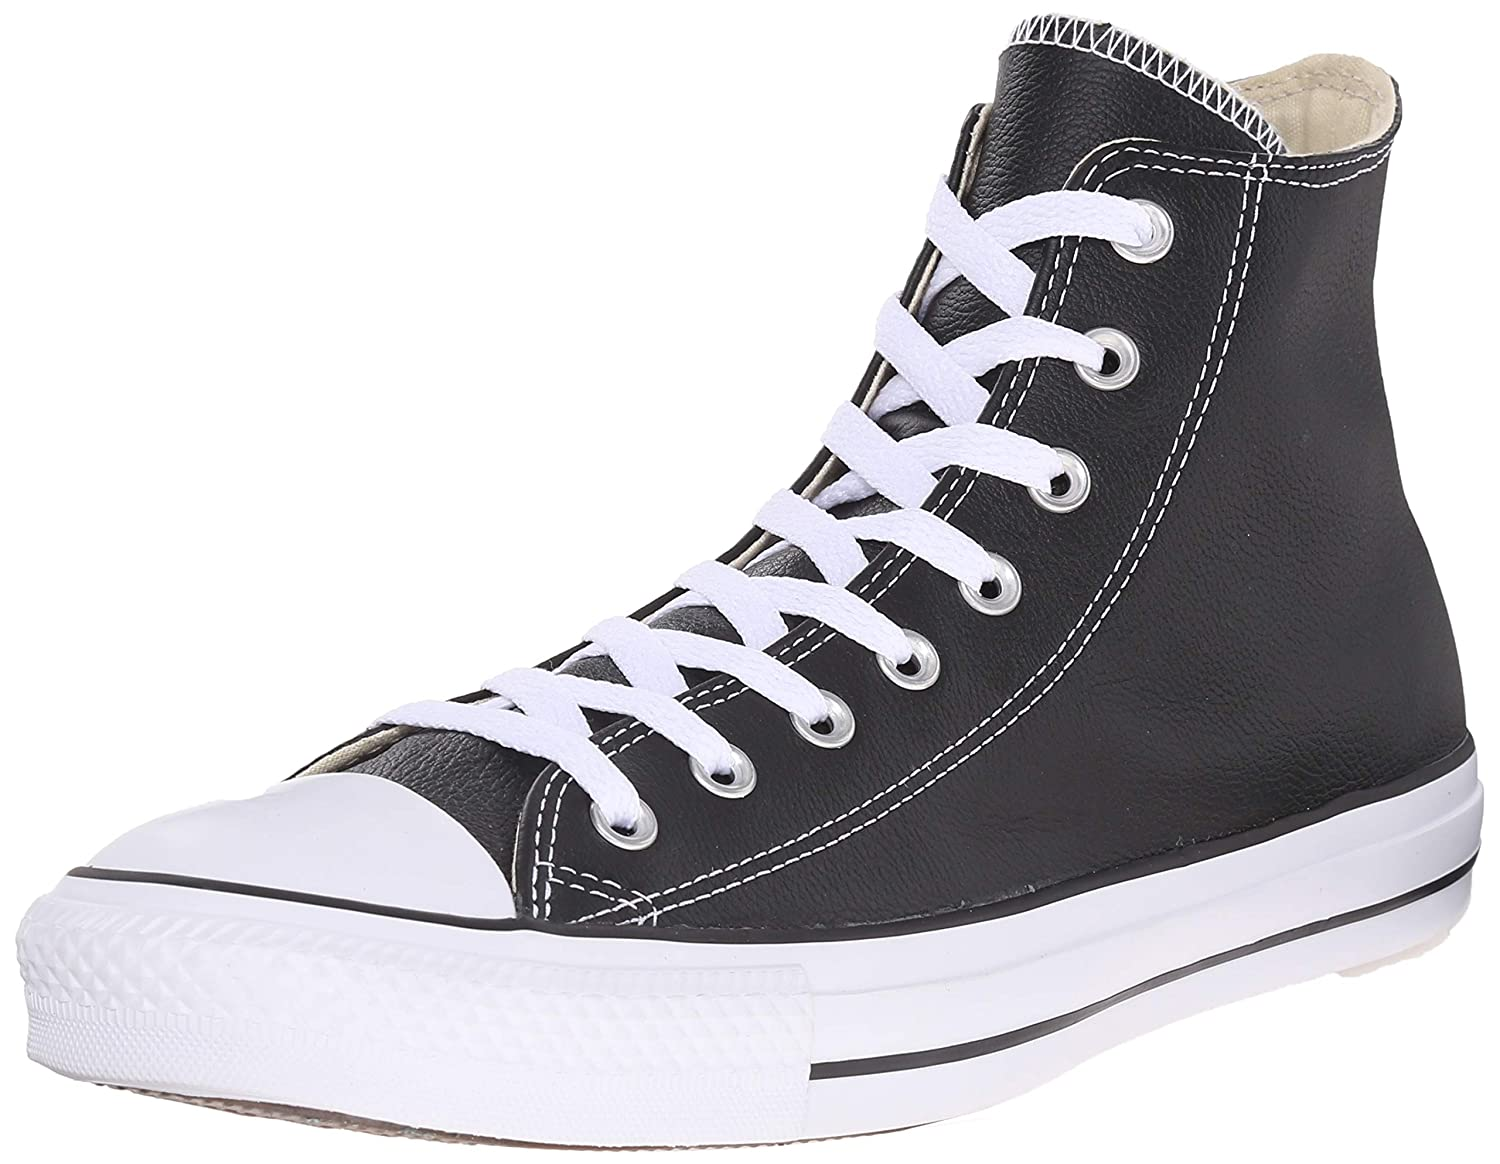 Black   Black   Papyrus Converse Women's Chuck Taylor All Star Leather High Top Sneaker